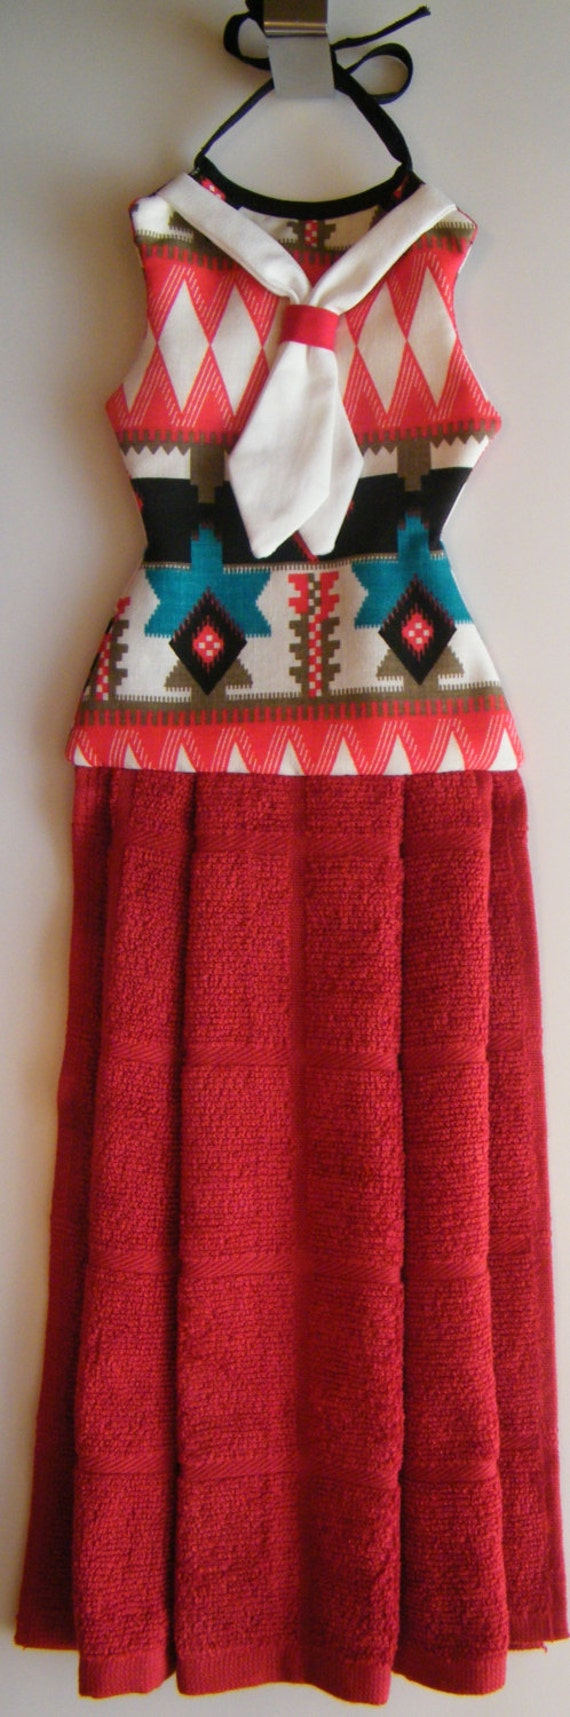 Hand towel decor with native american prints by for Native kitchen designs and decors photos